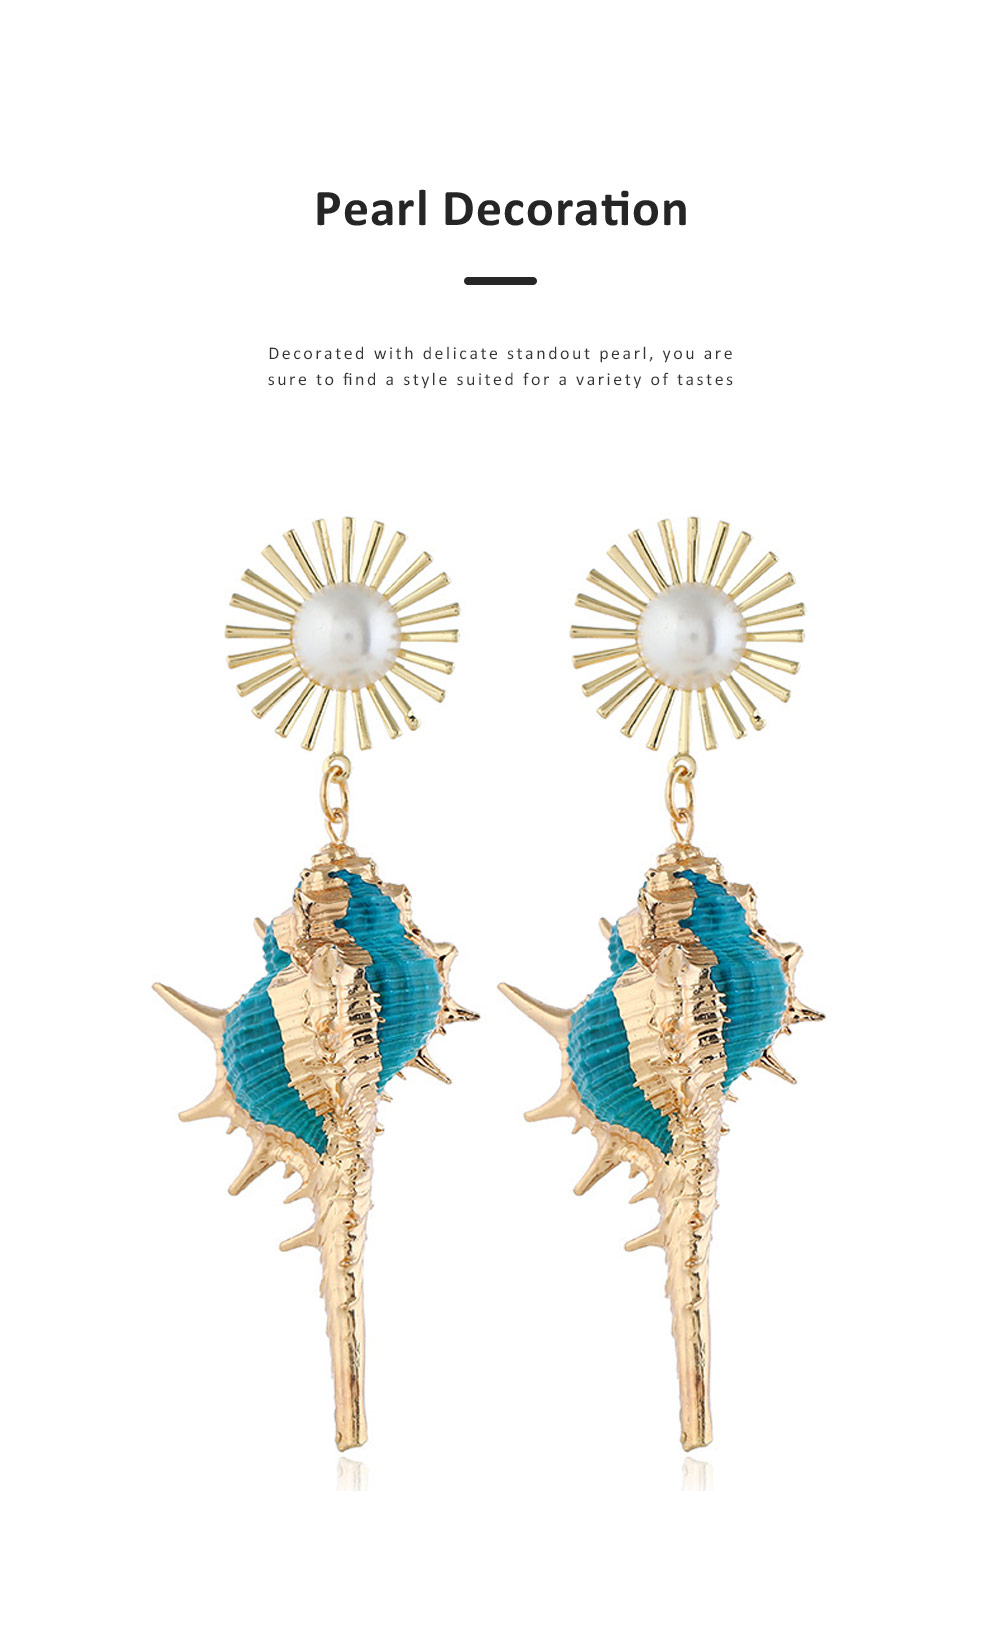 Stylish Seashell Dangle Earrings Conch Design Charming Jewelry Great Gift for Women 3